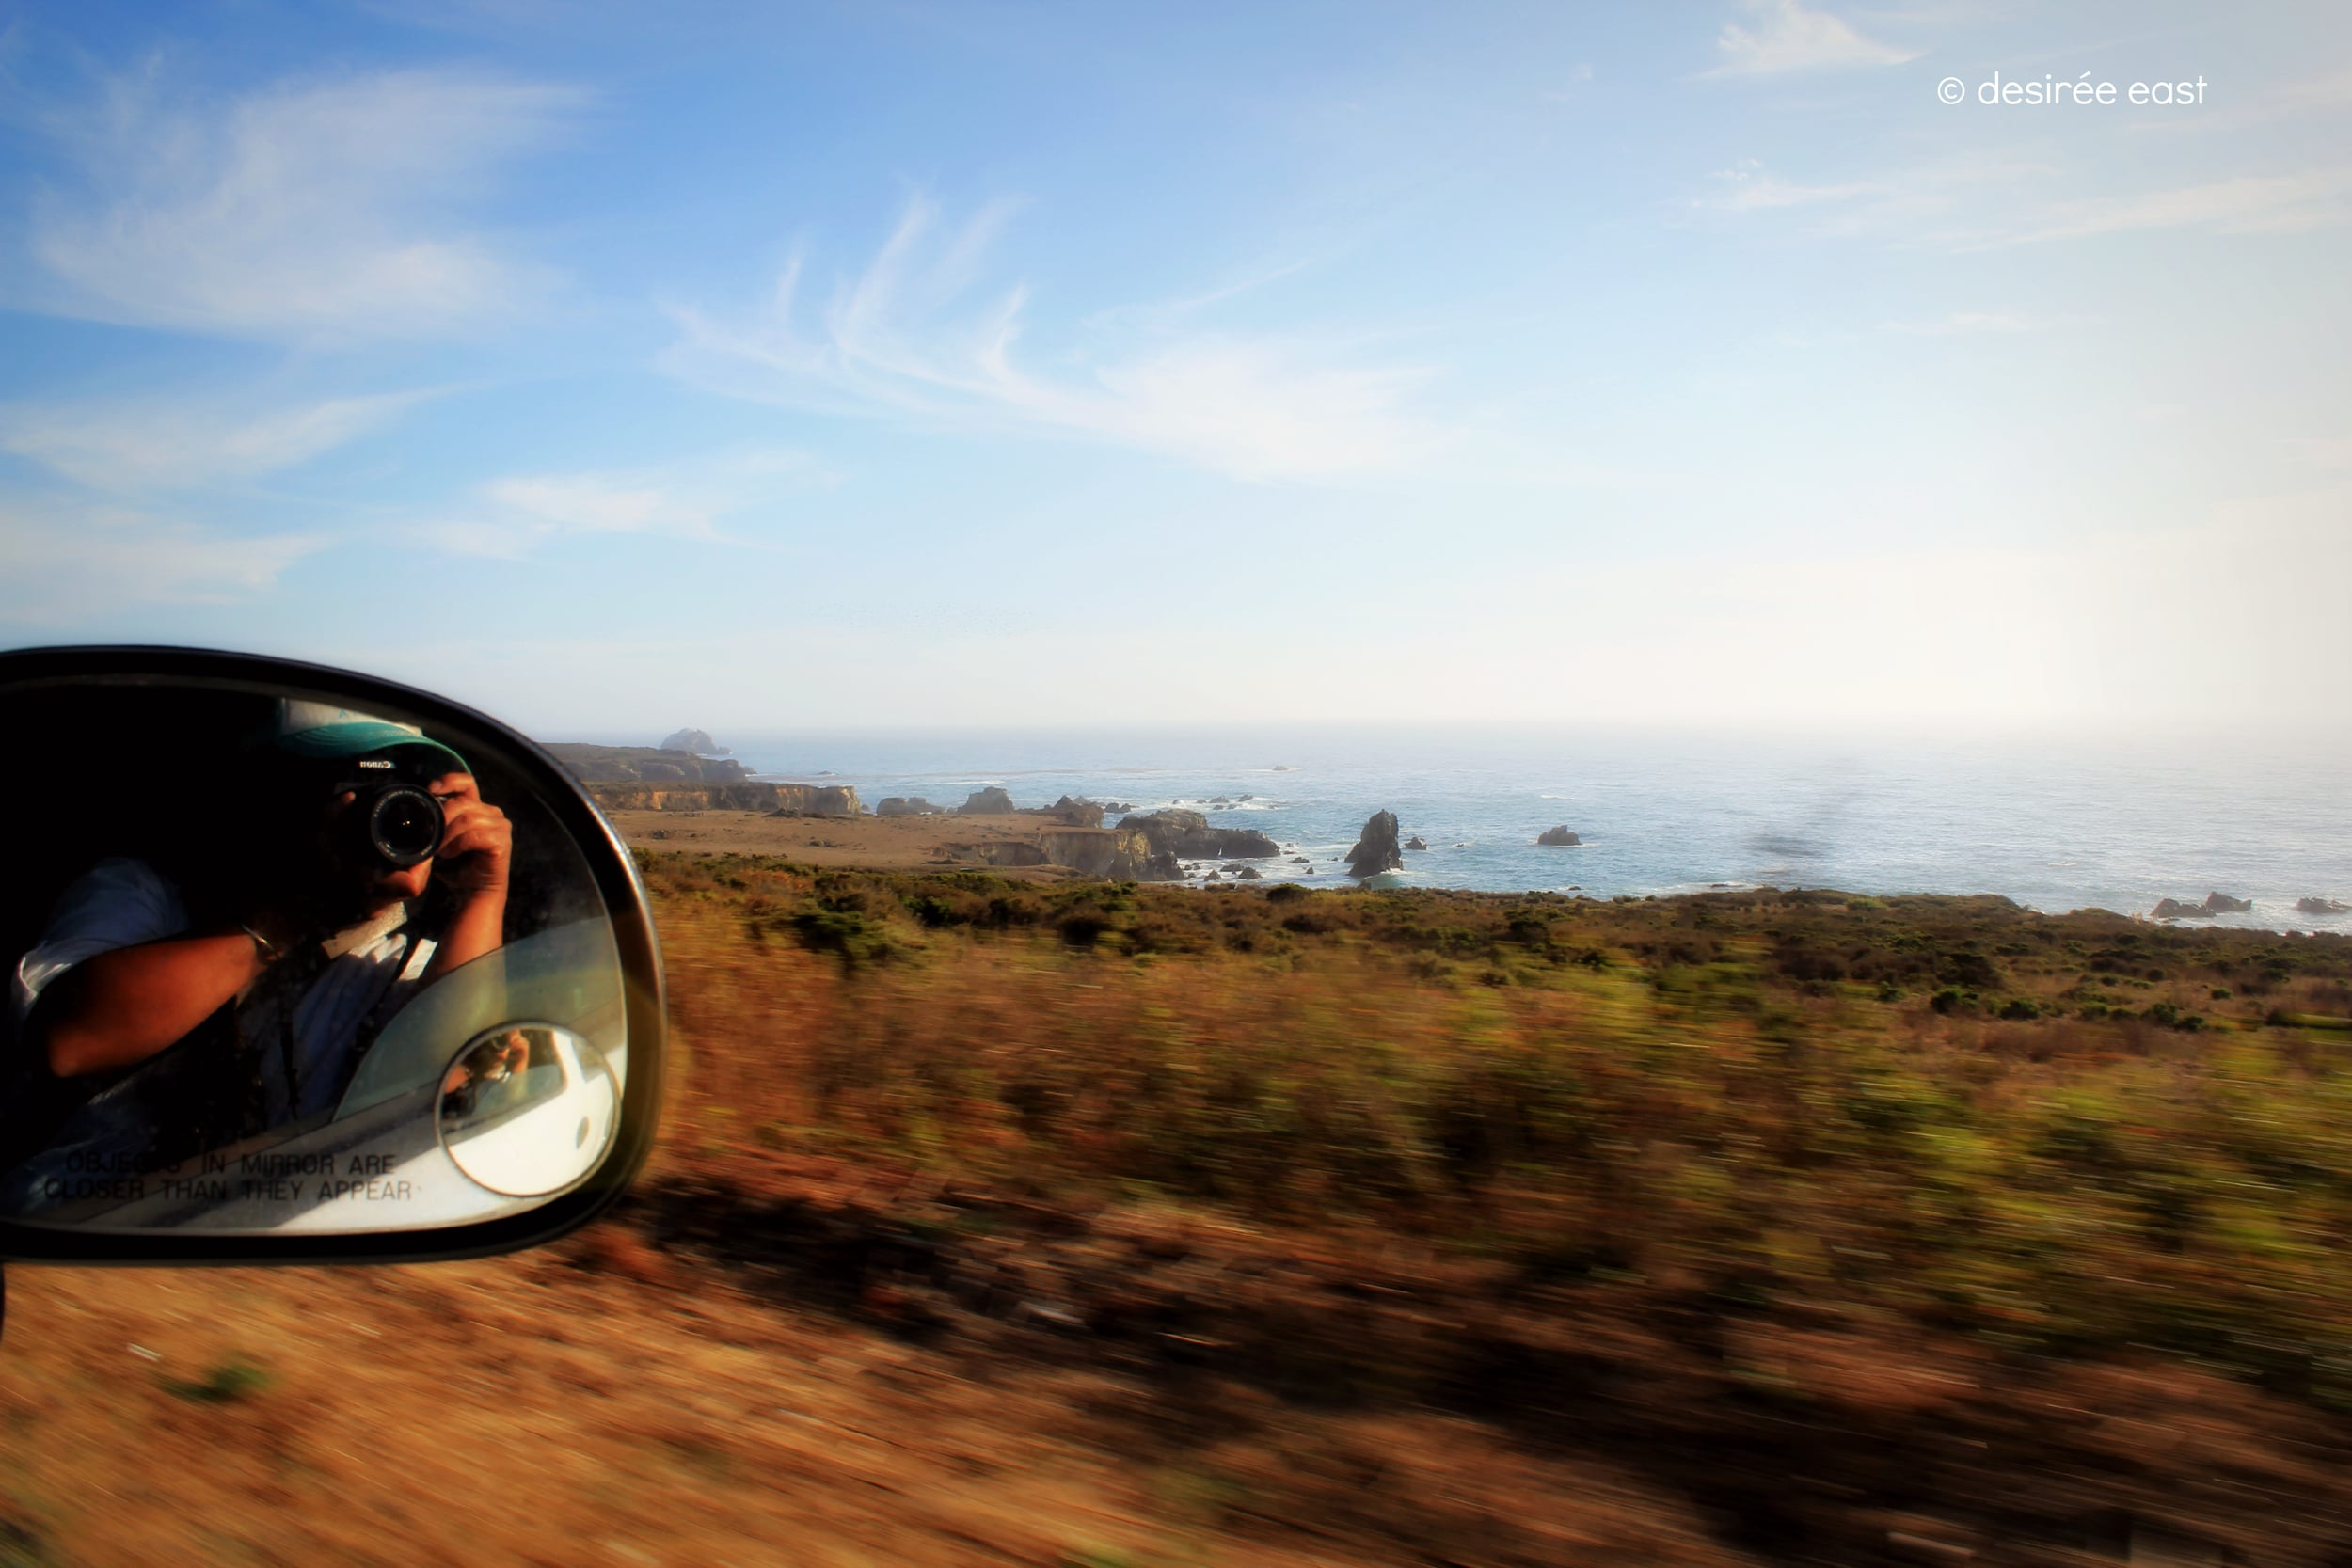 driving along the central coast. big sur, california. photo by desiree east.